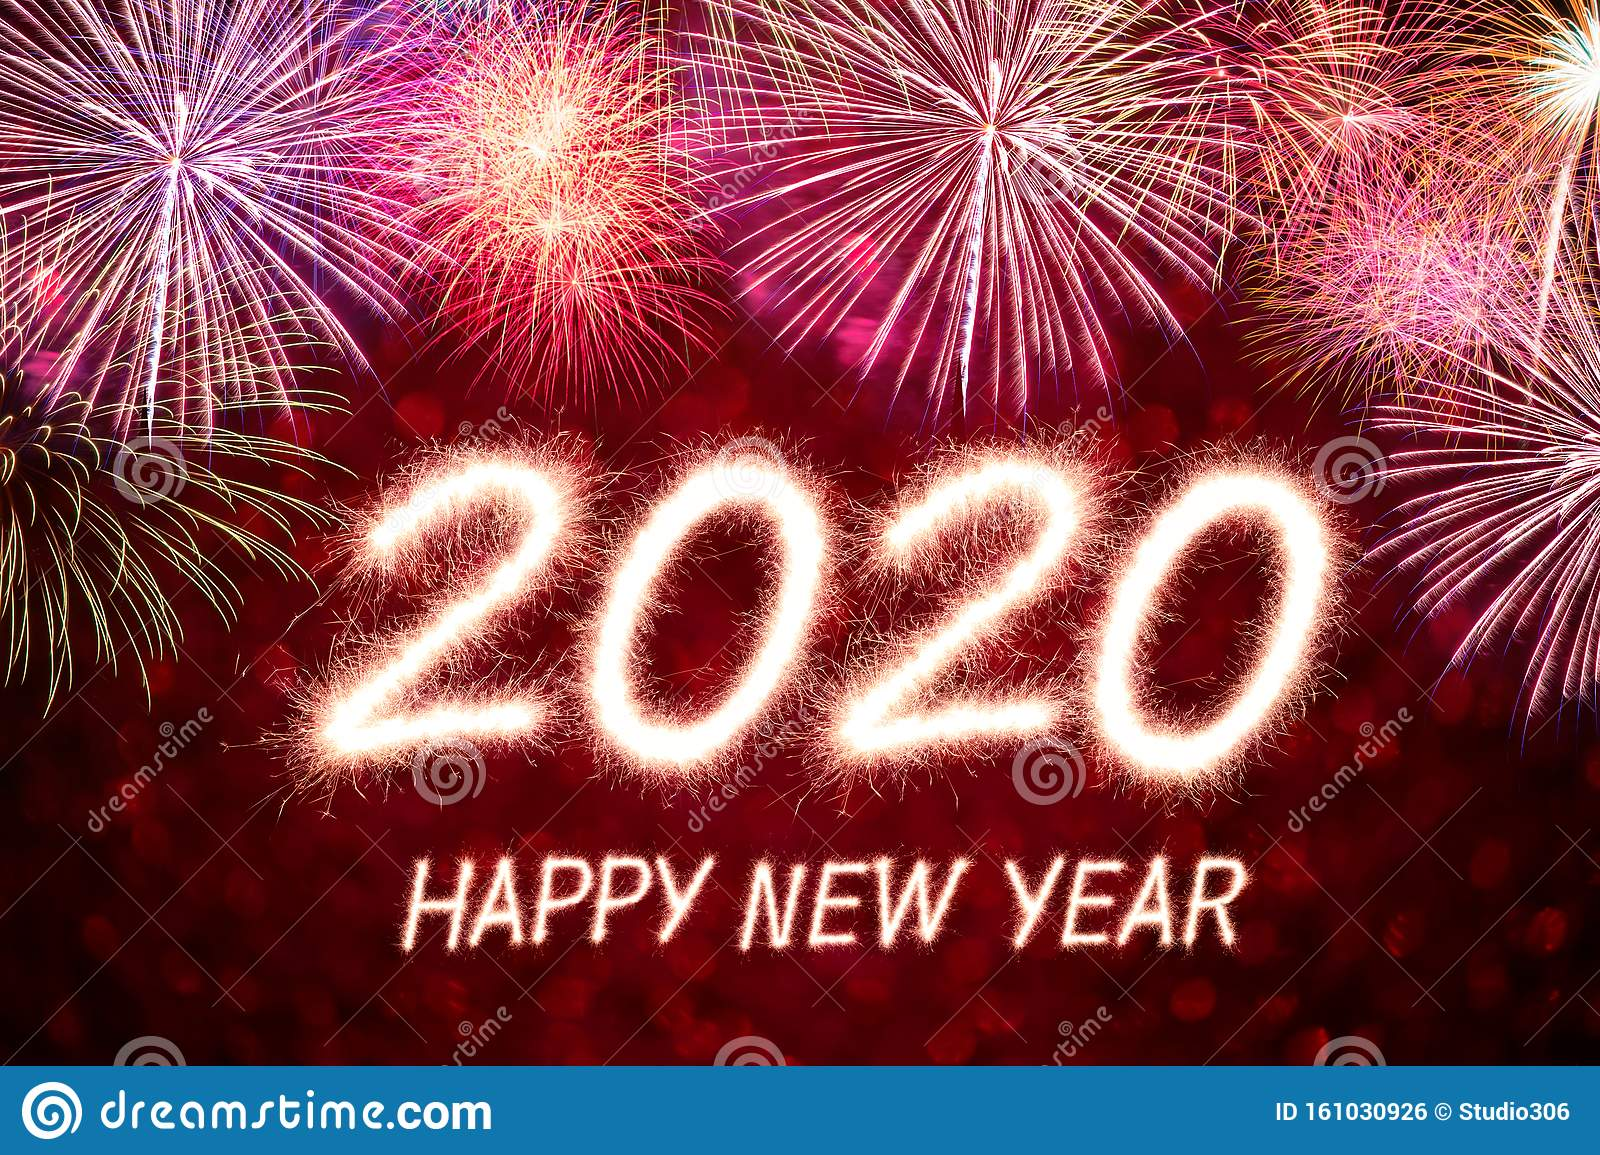 44 361 happy new year 2020 photos free royalty free stock photos from dreamstime https www dreamstime com happy new year written sparkle firework image161030926